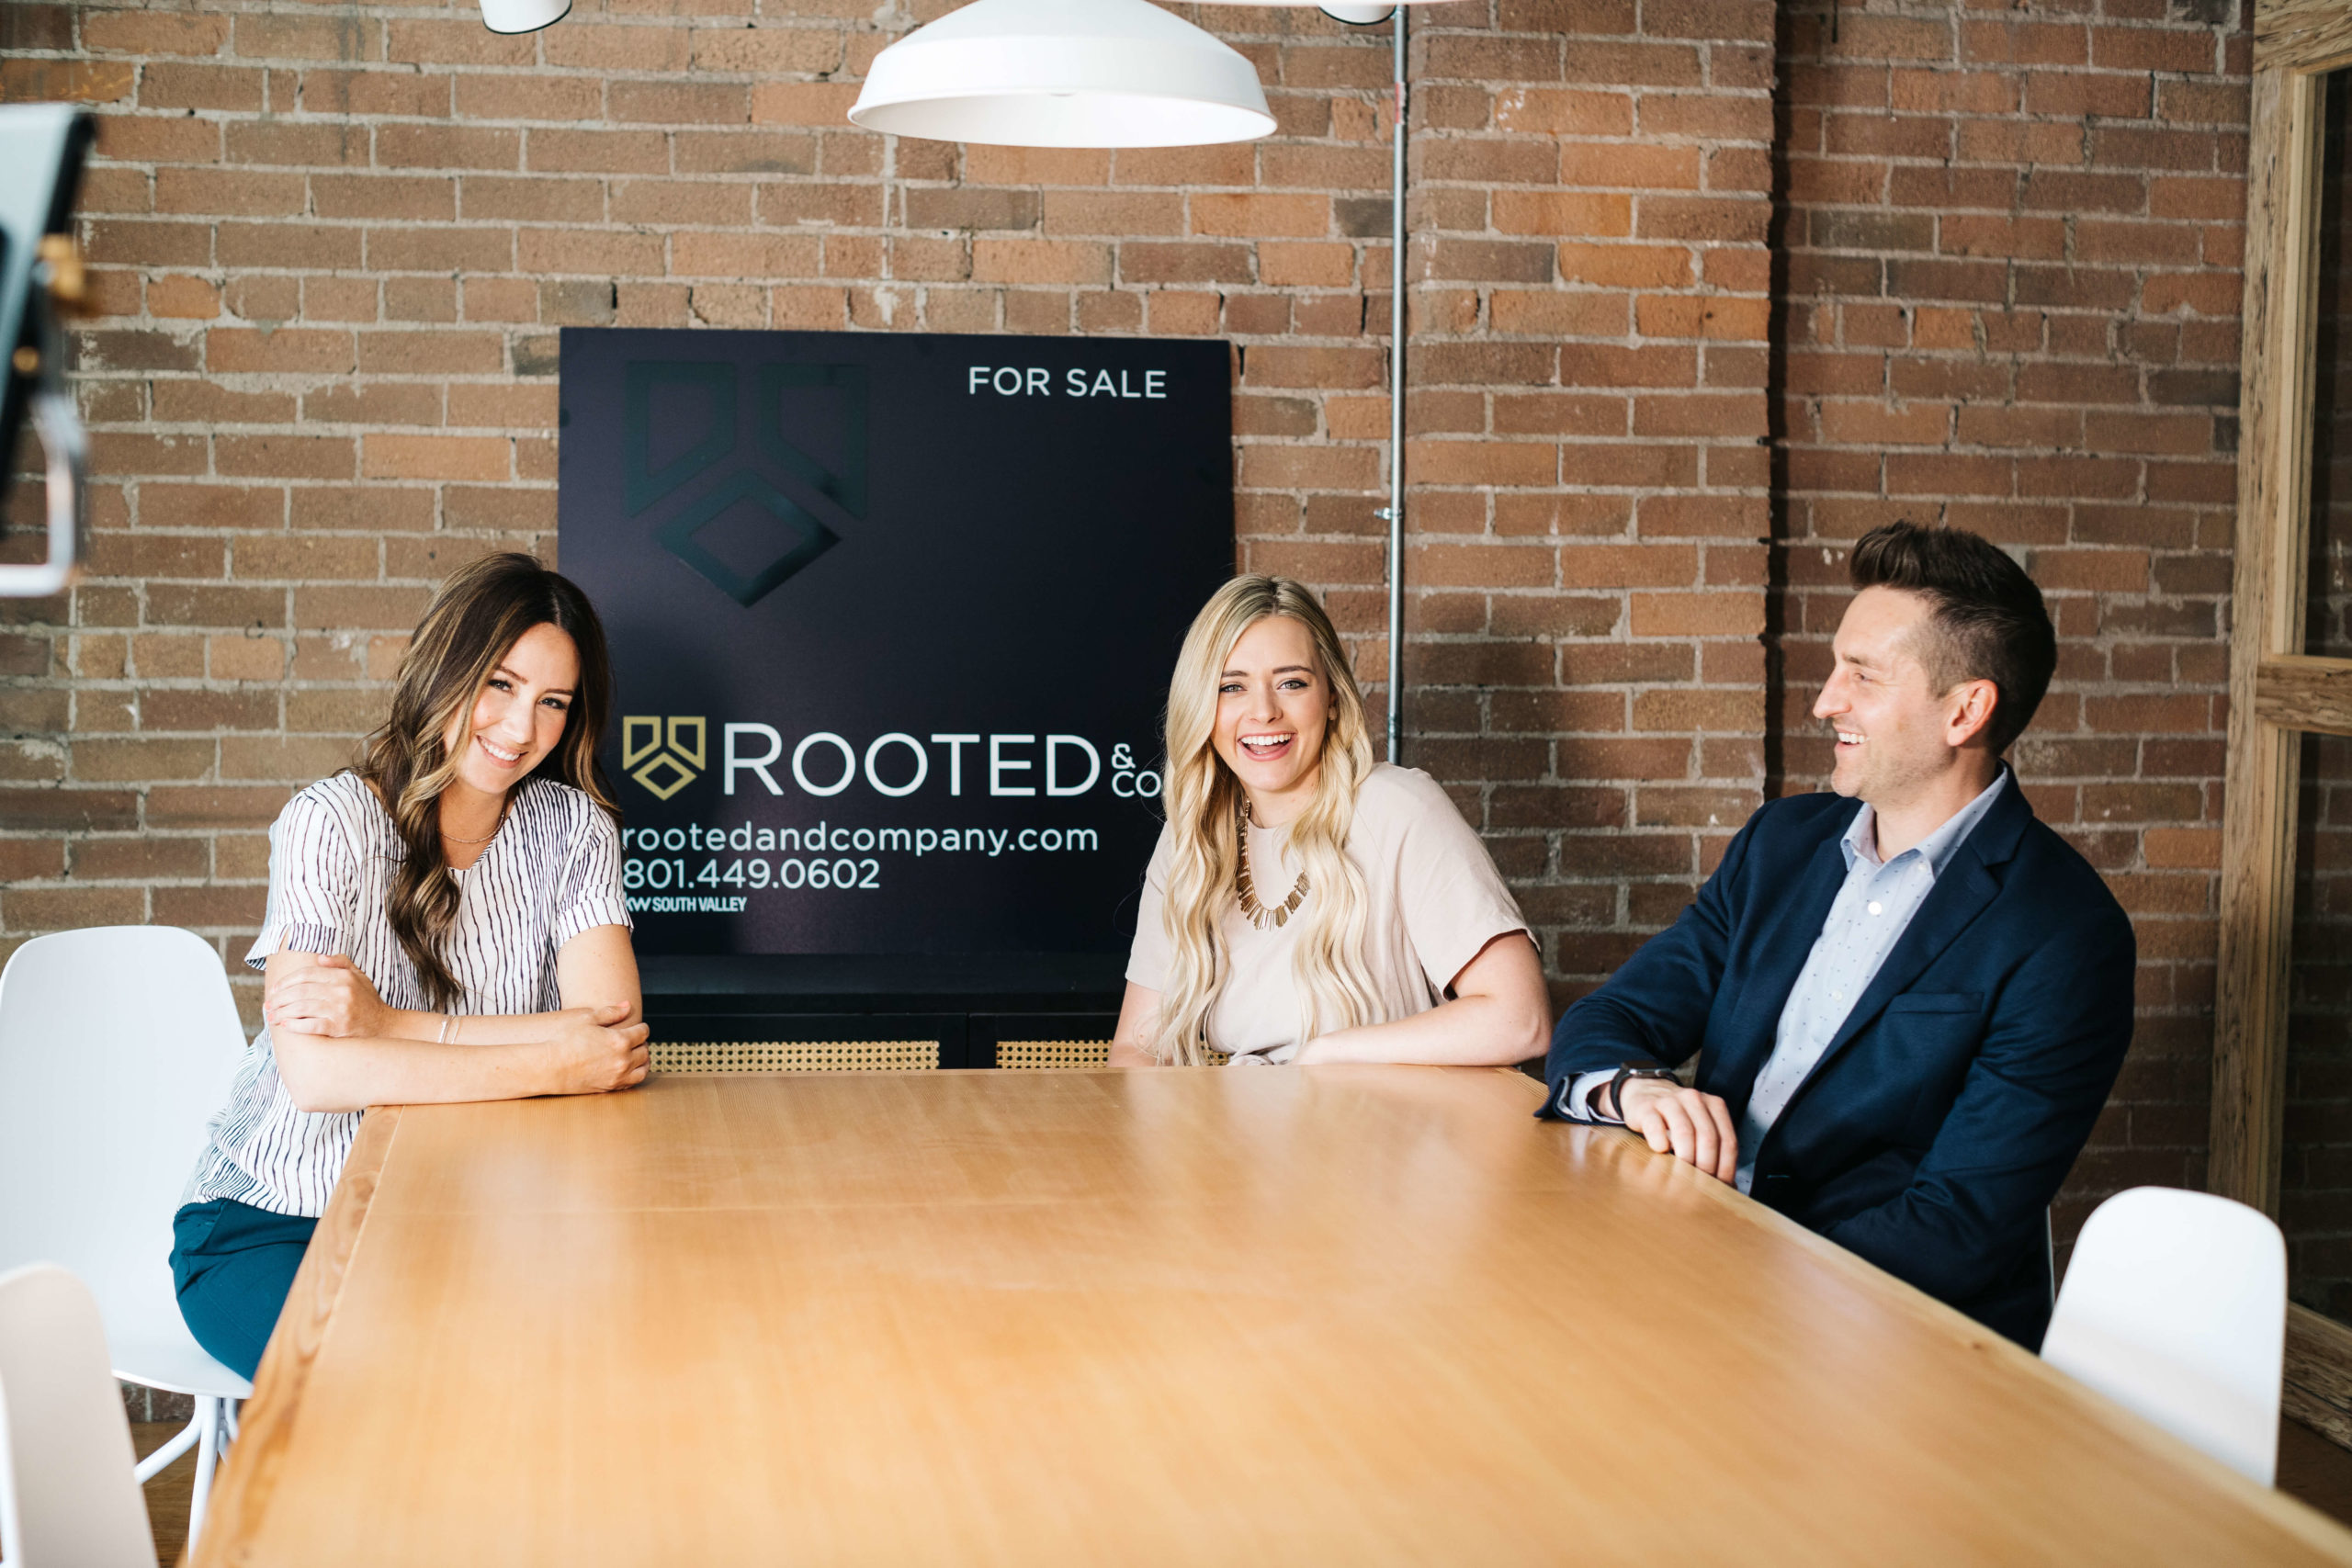 The Rooted & Co. team.